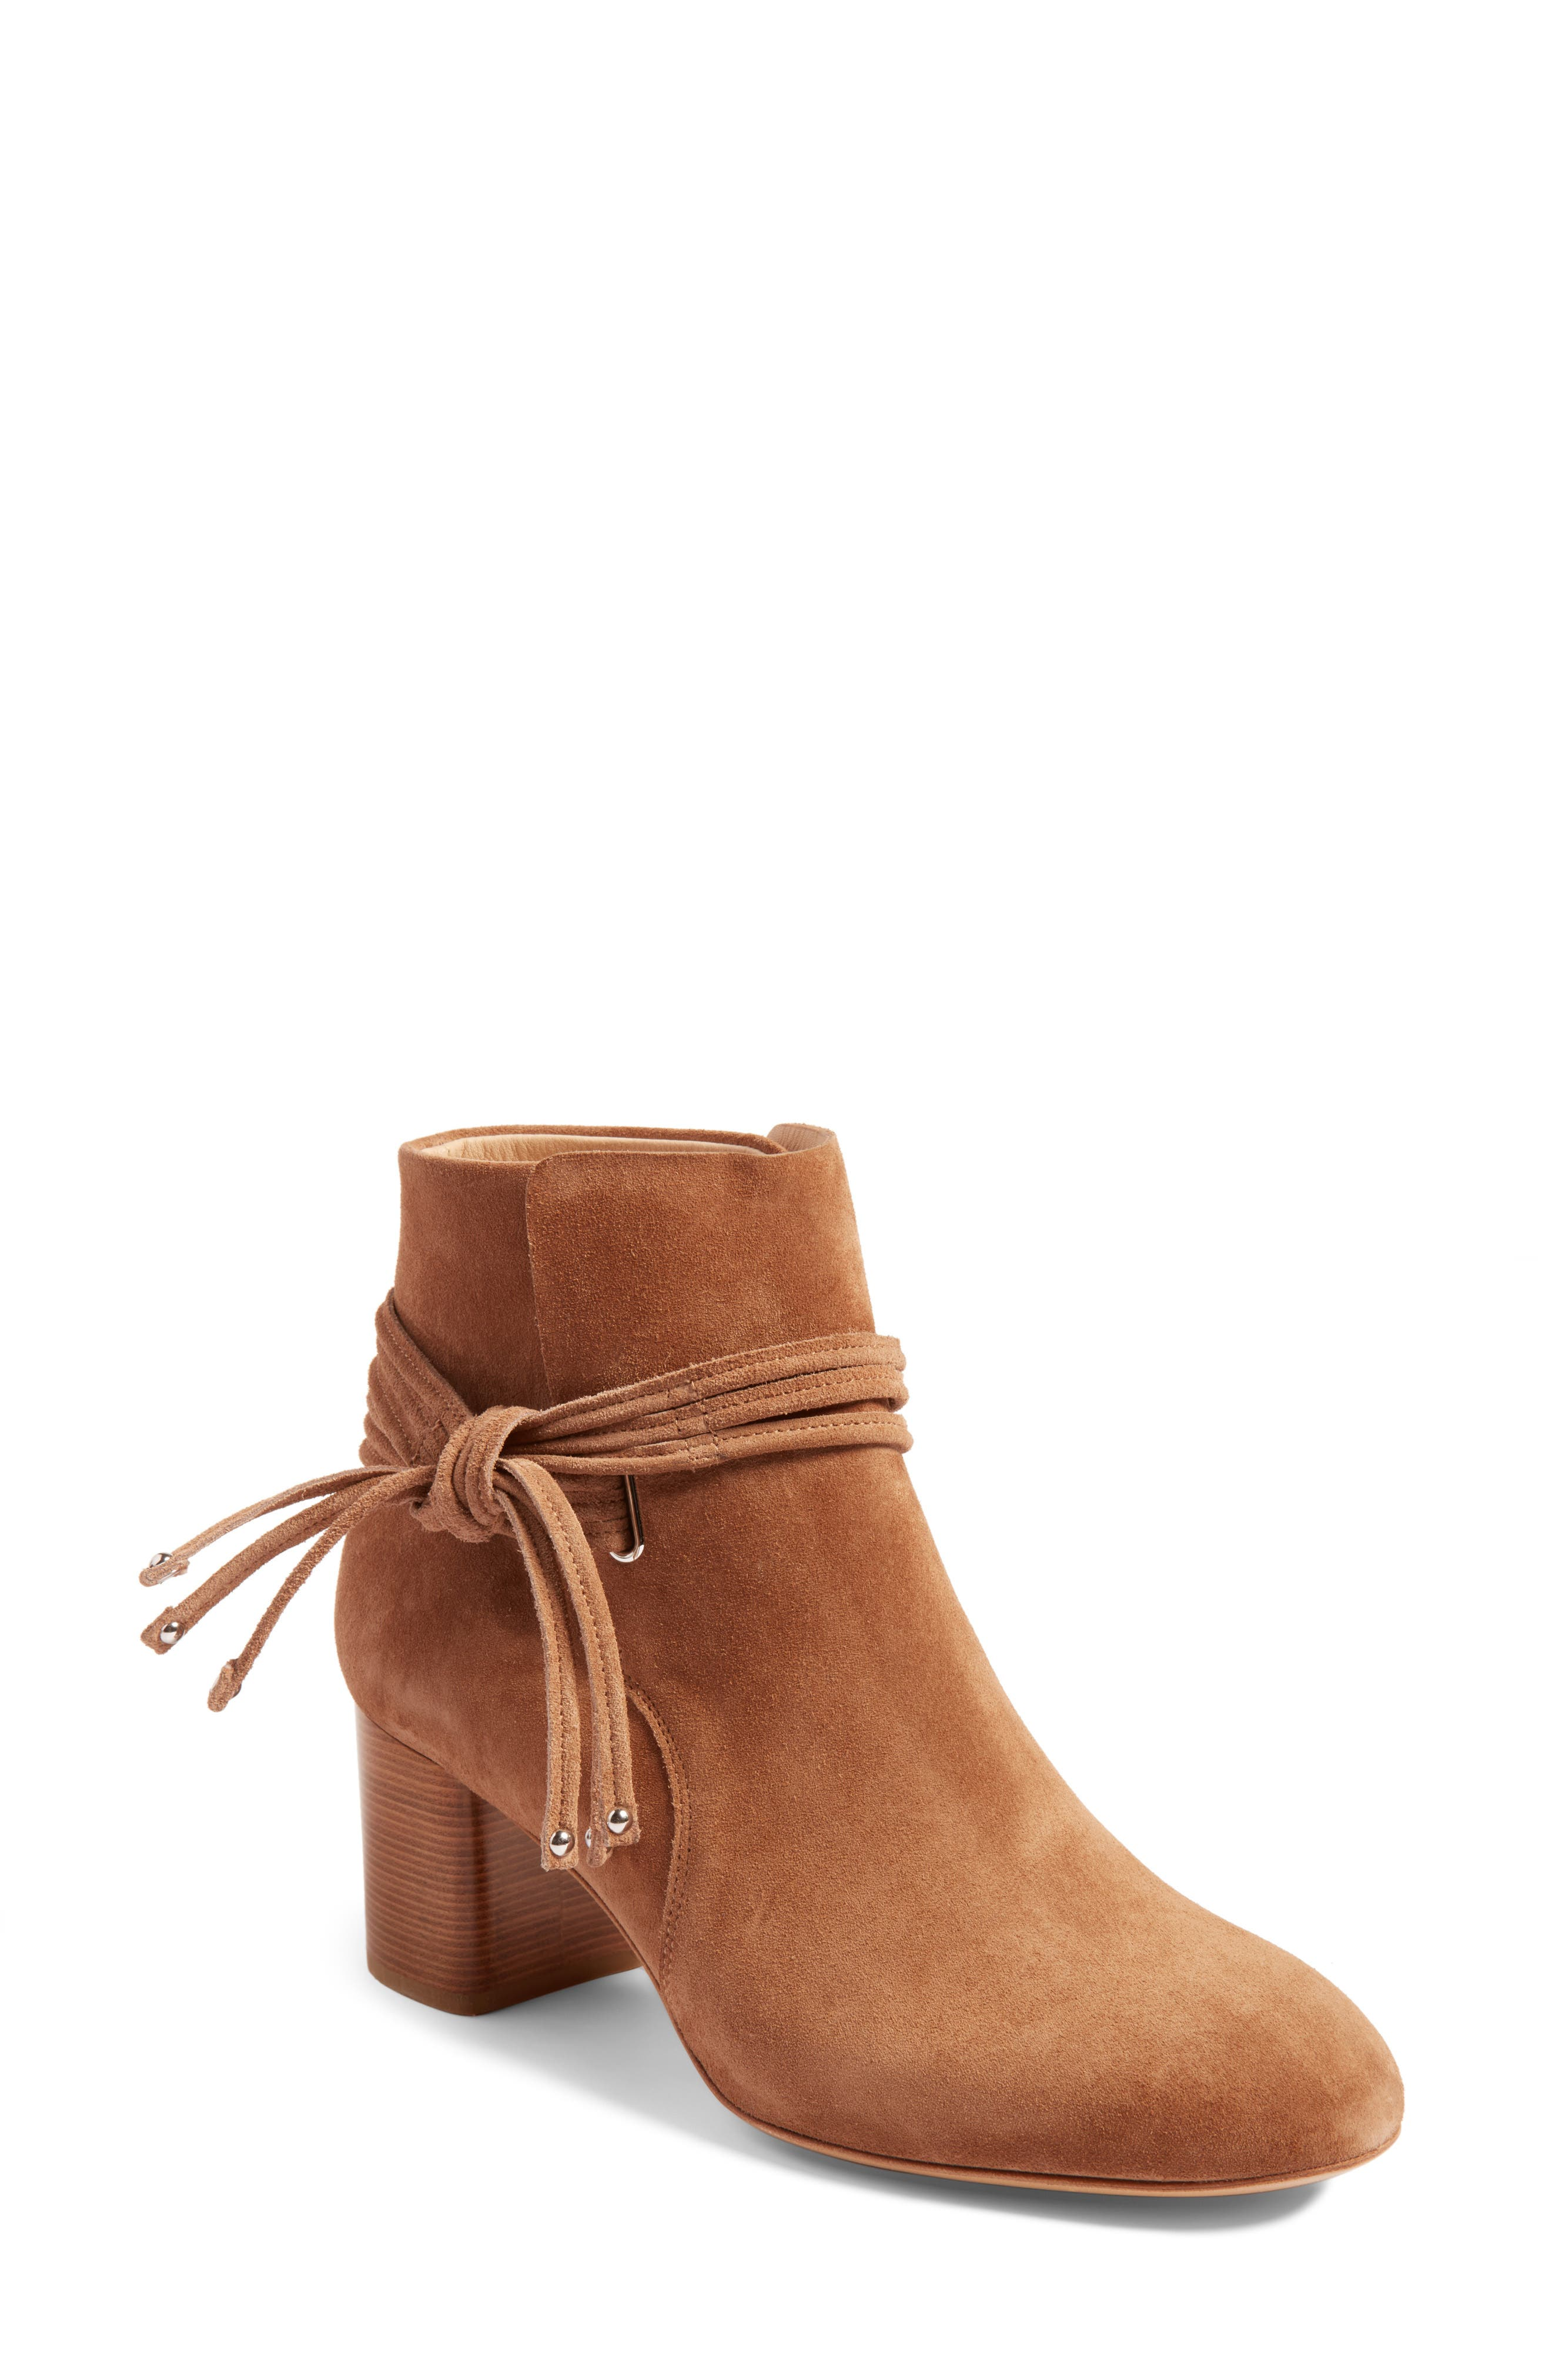 Alternate Image 1 Selected - rag & bone Dalia II Tie-Strap Bootie (Women)